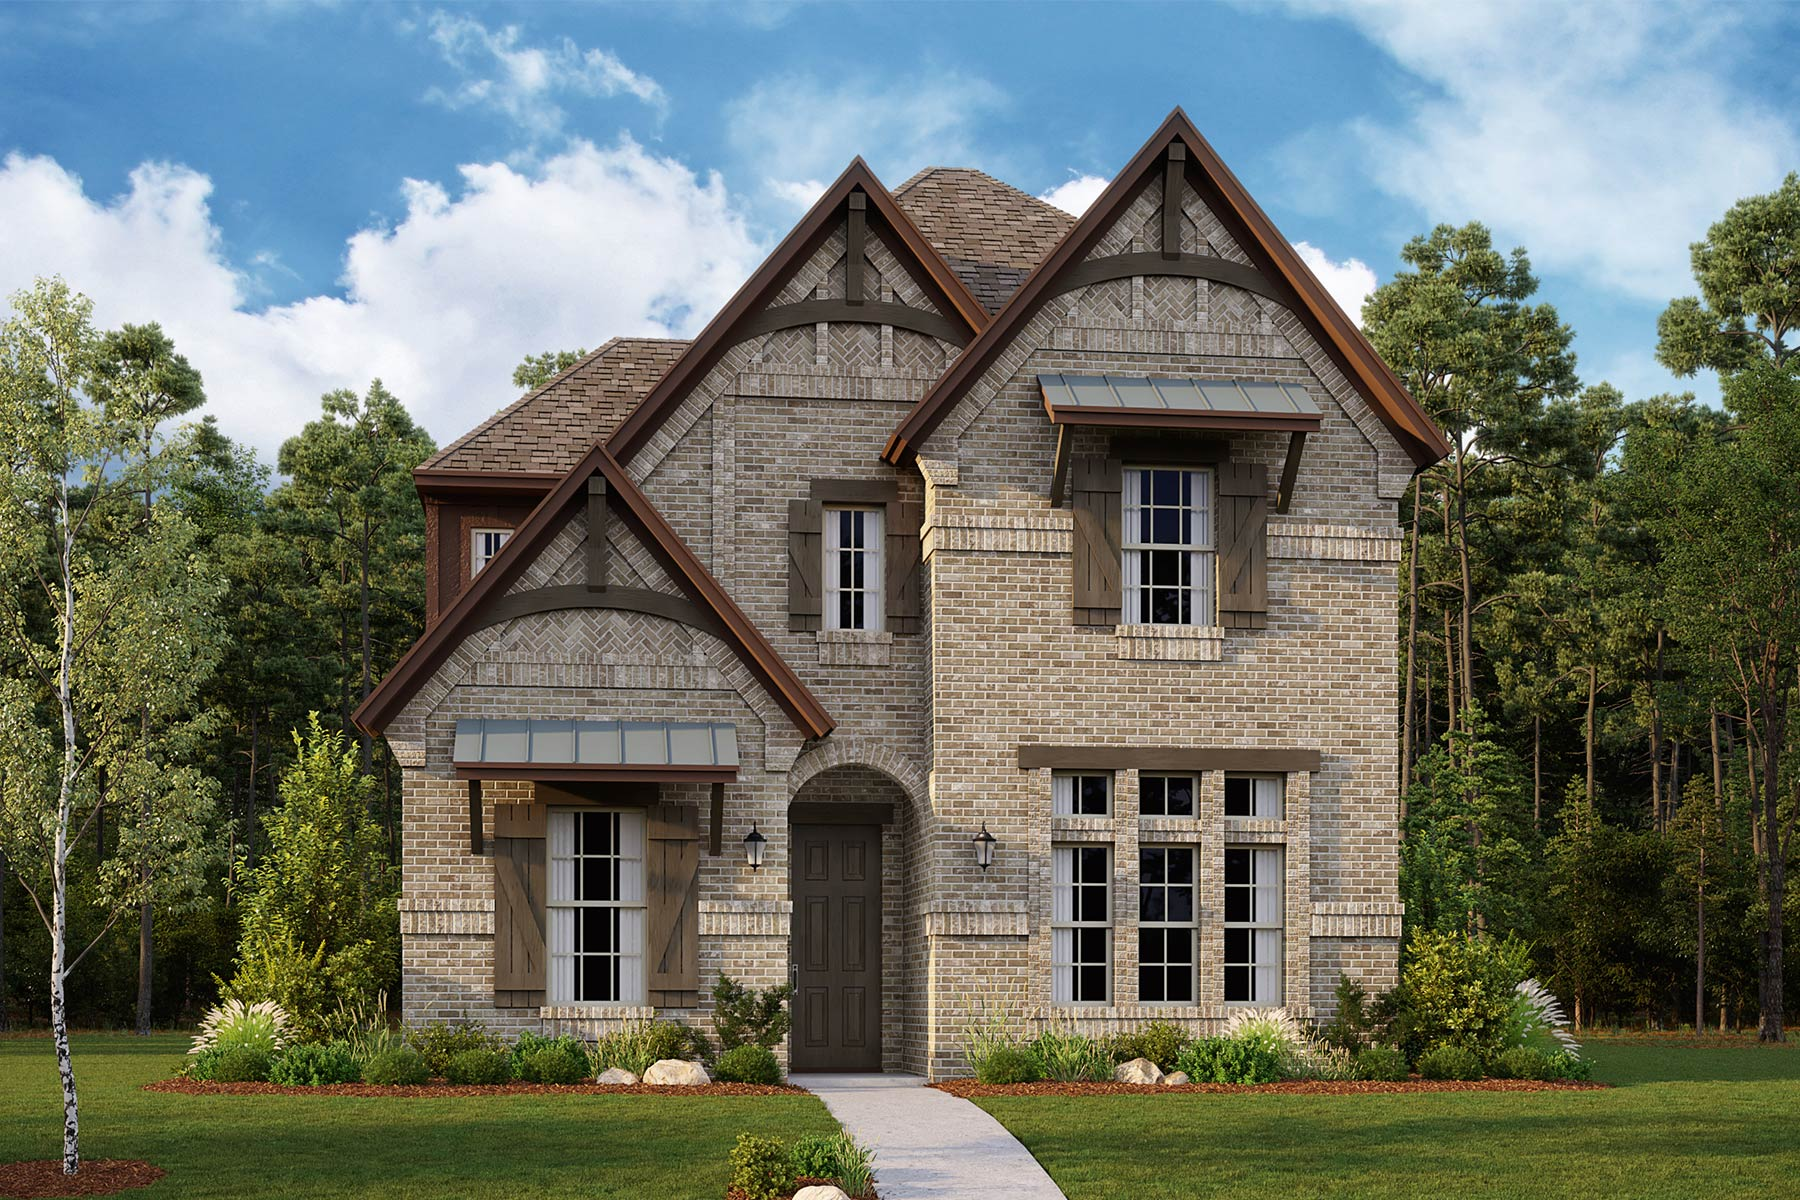 Brentwood Plan Elevation Front at Kensington Place in Farmers Branch Texas by Mattamy Homes